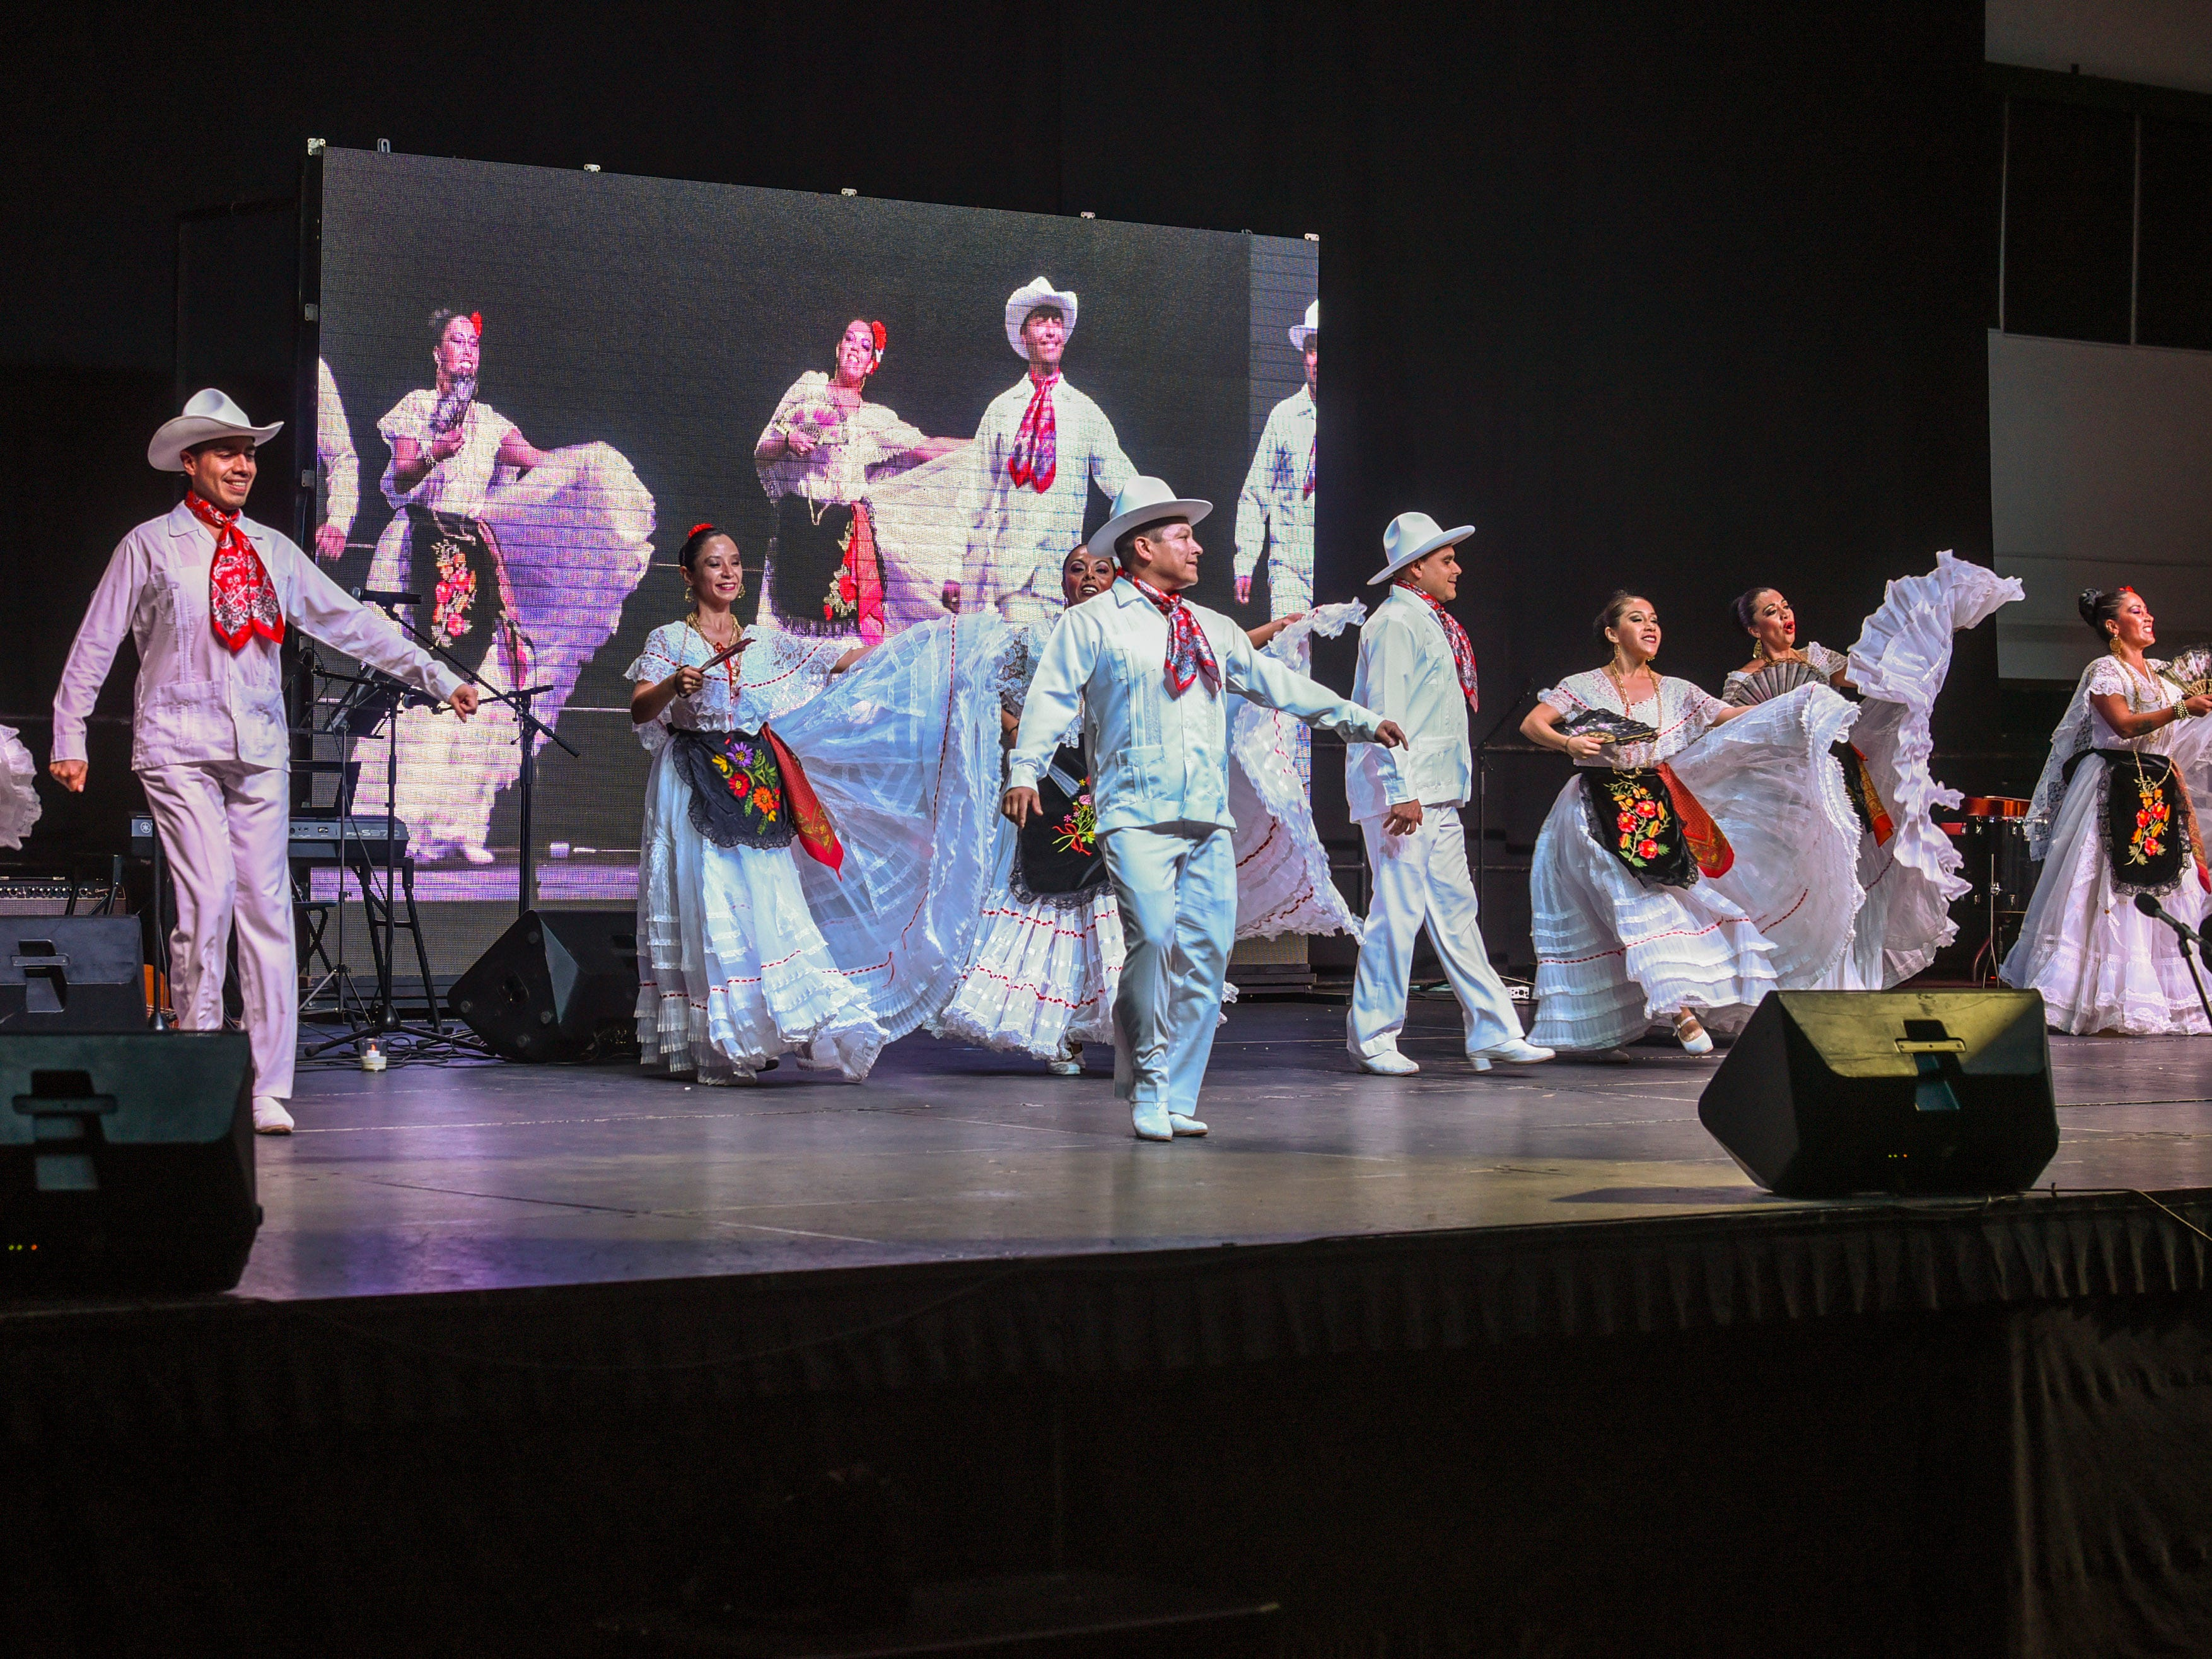 Members of Mexico's Estampas Mexico perform during a matinee show of the 3rd International Dance Festival at the University of Guam Calvo Field House in Mangilao on Wednesday, Dec. 5, 2018. The festival, presented by Inetnon Gefpa'go Cultural Arts Program Inc., is also slated to feature dancers representing the countries of Argentina, Costa Rica, Finland, Philippines and Guam. Shows are scheduled to be held at UOG on Thursday morning and Saturday evening. Additional public shows are scheduled at Dec. 6, 6:30 p.m., Thursday at the Micronesia Mall and another at Dec. 7, 7:30 p.m., Saturday at the Guam Museum.